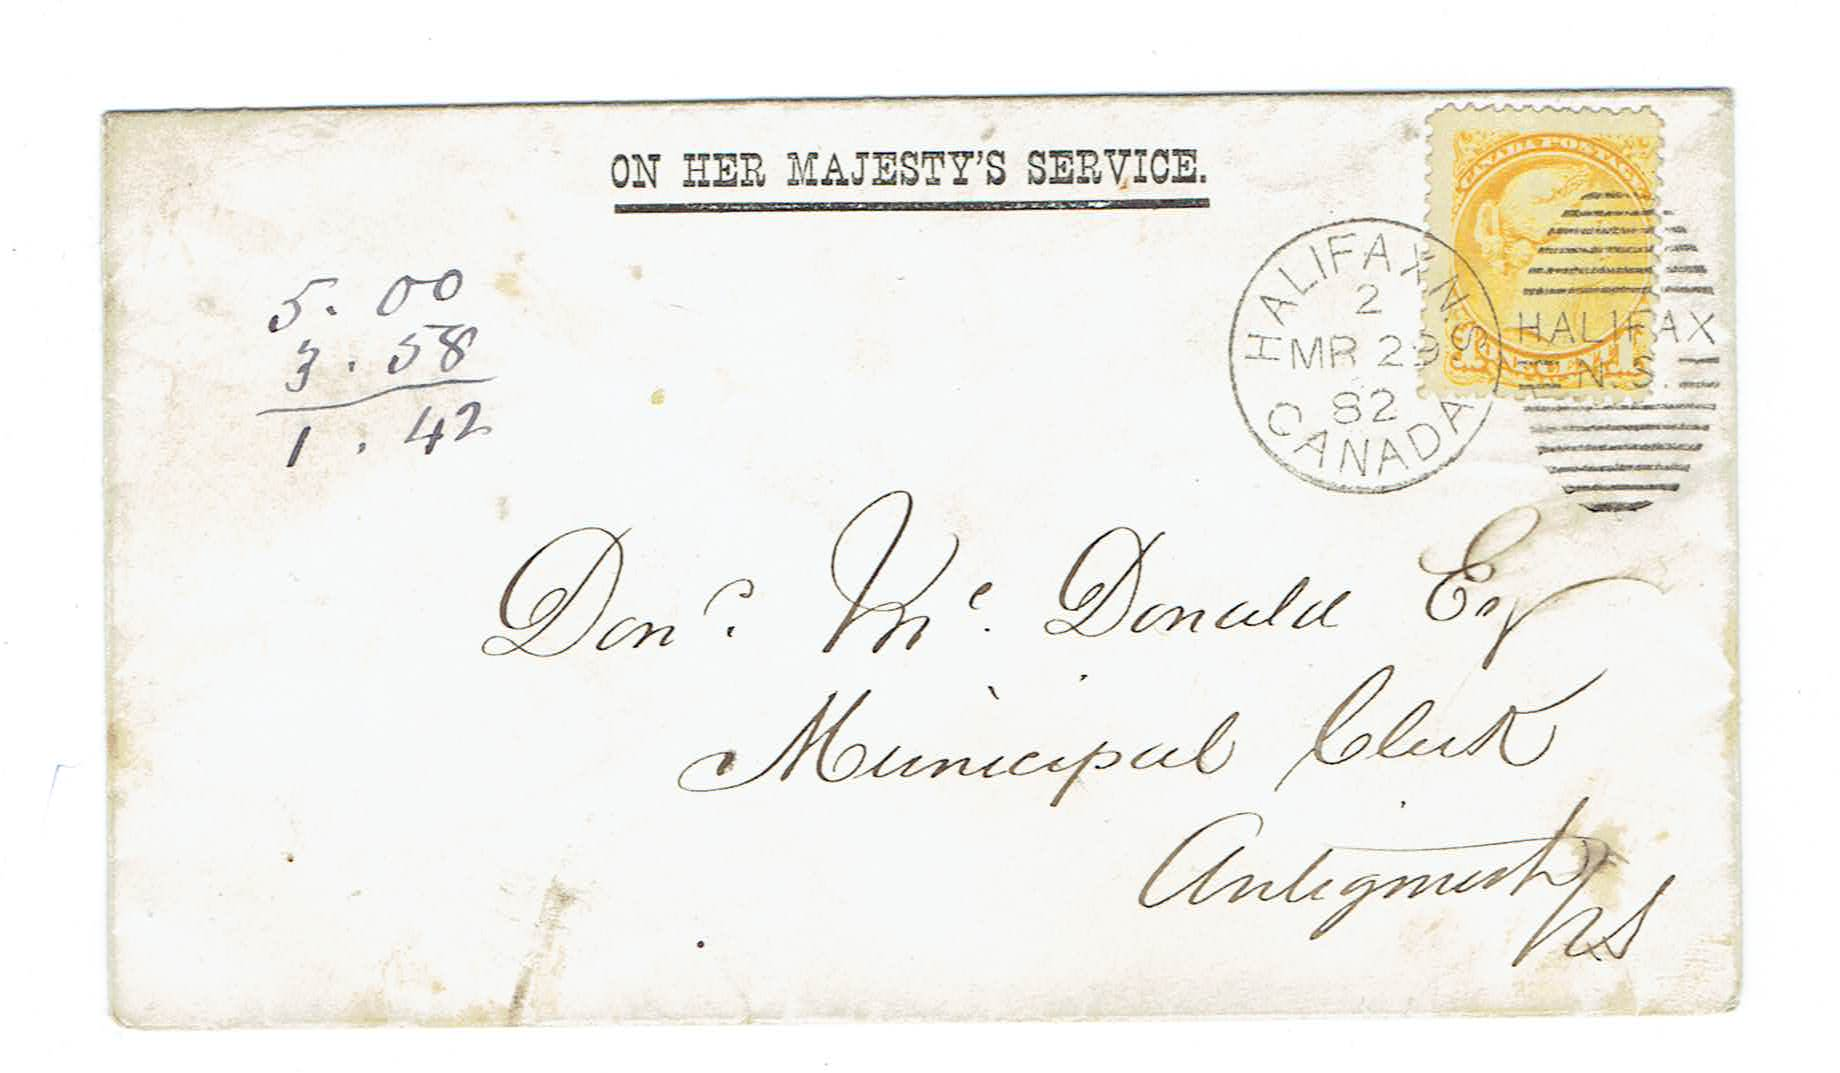 CANADA OHMS COVER 1882. Halifax, NS. Provincial